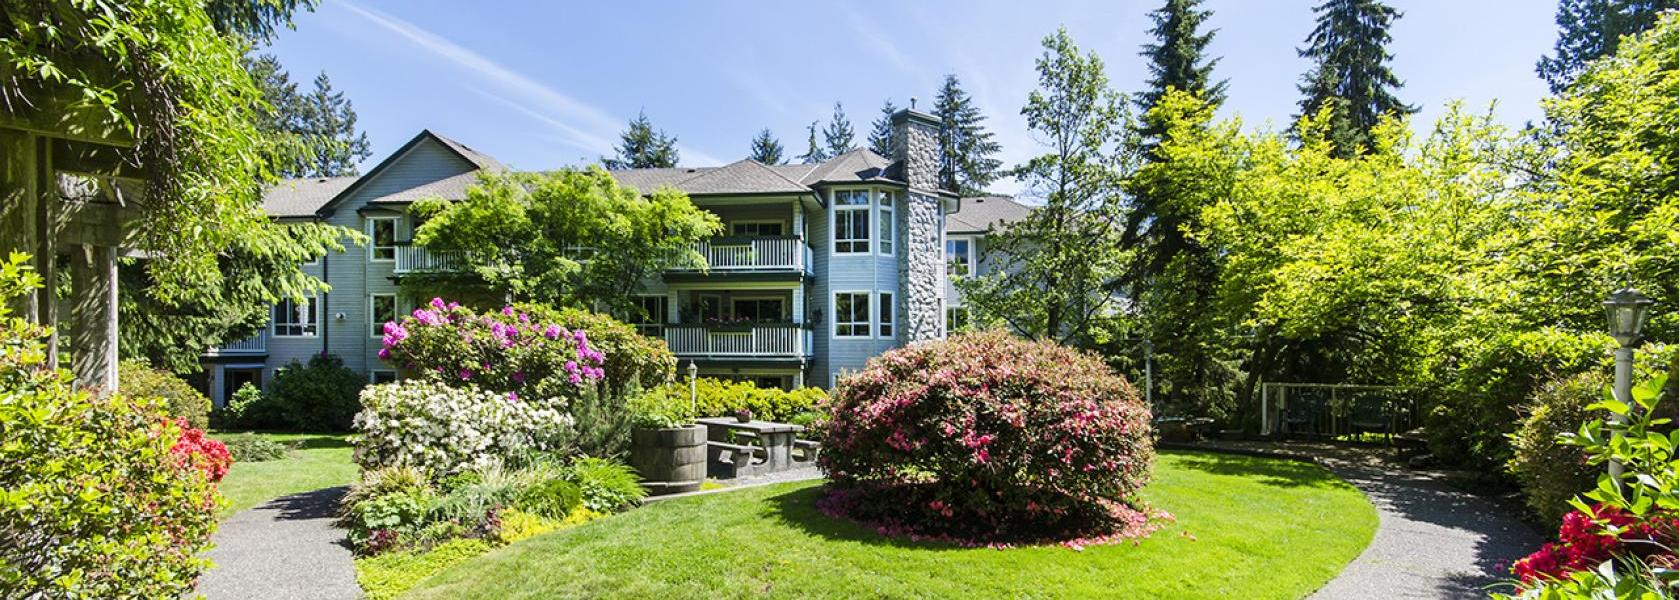 106 - 1150 Lynn Valley Road, Lynn Valley, North Vancouver